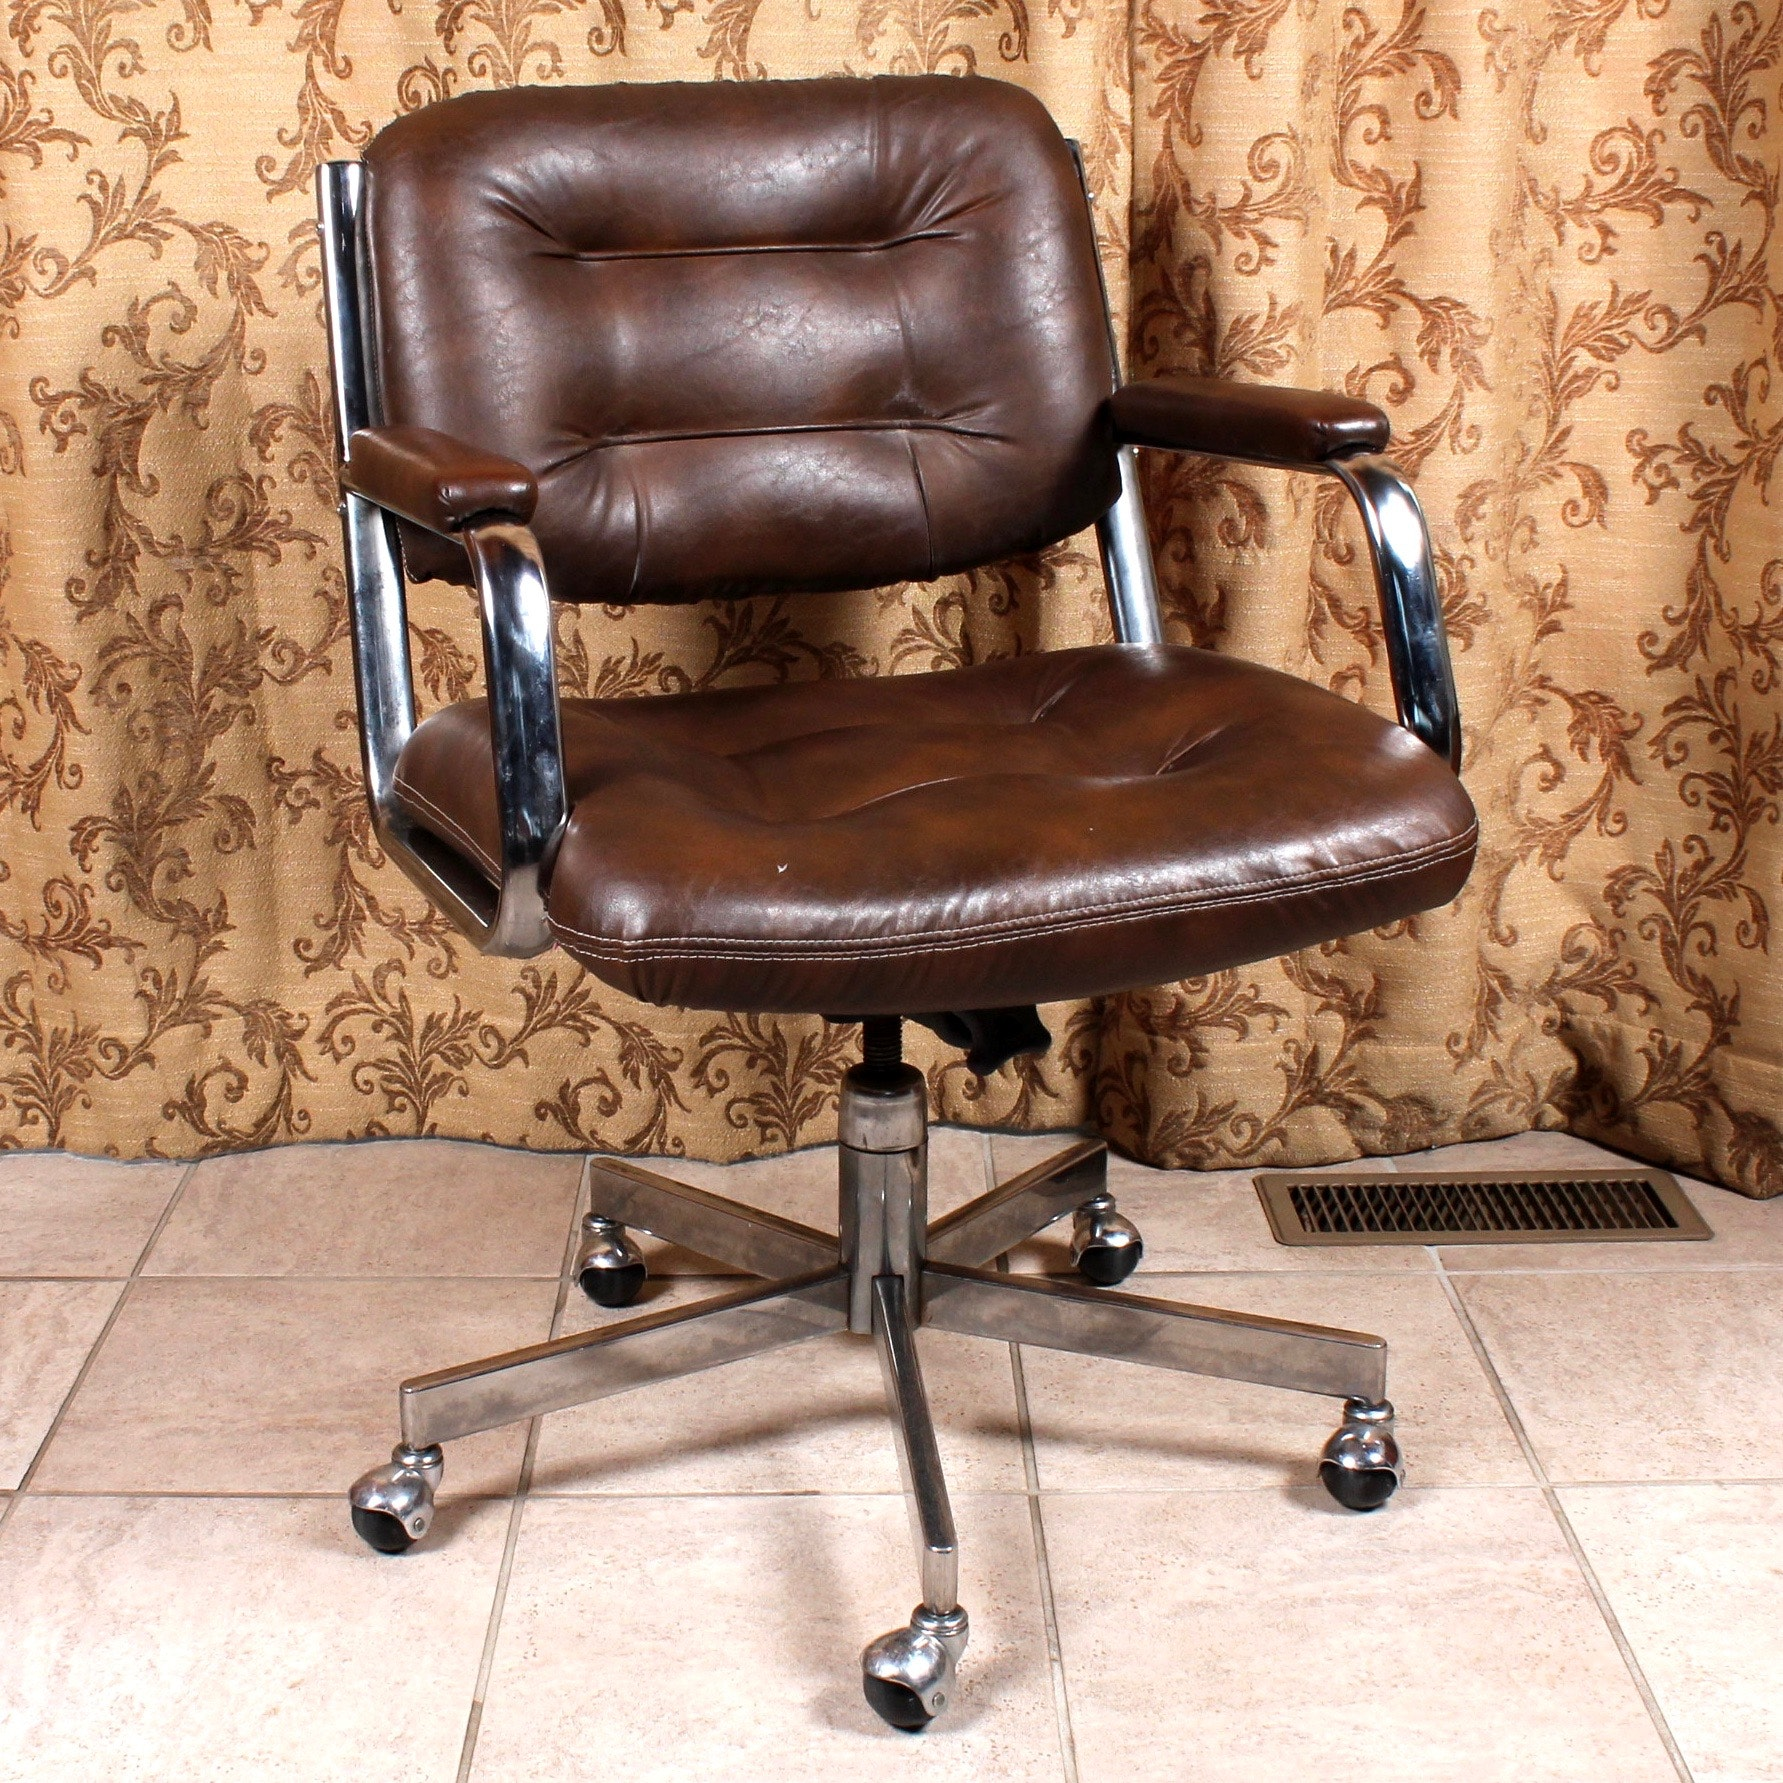 Vintage Style Faux Leather Upholstered Office Chair ...